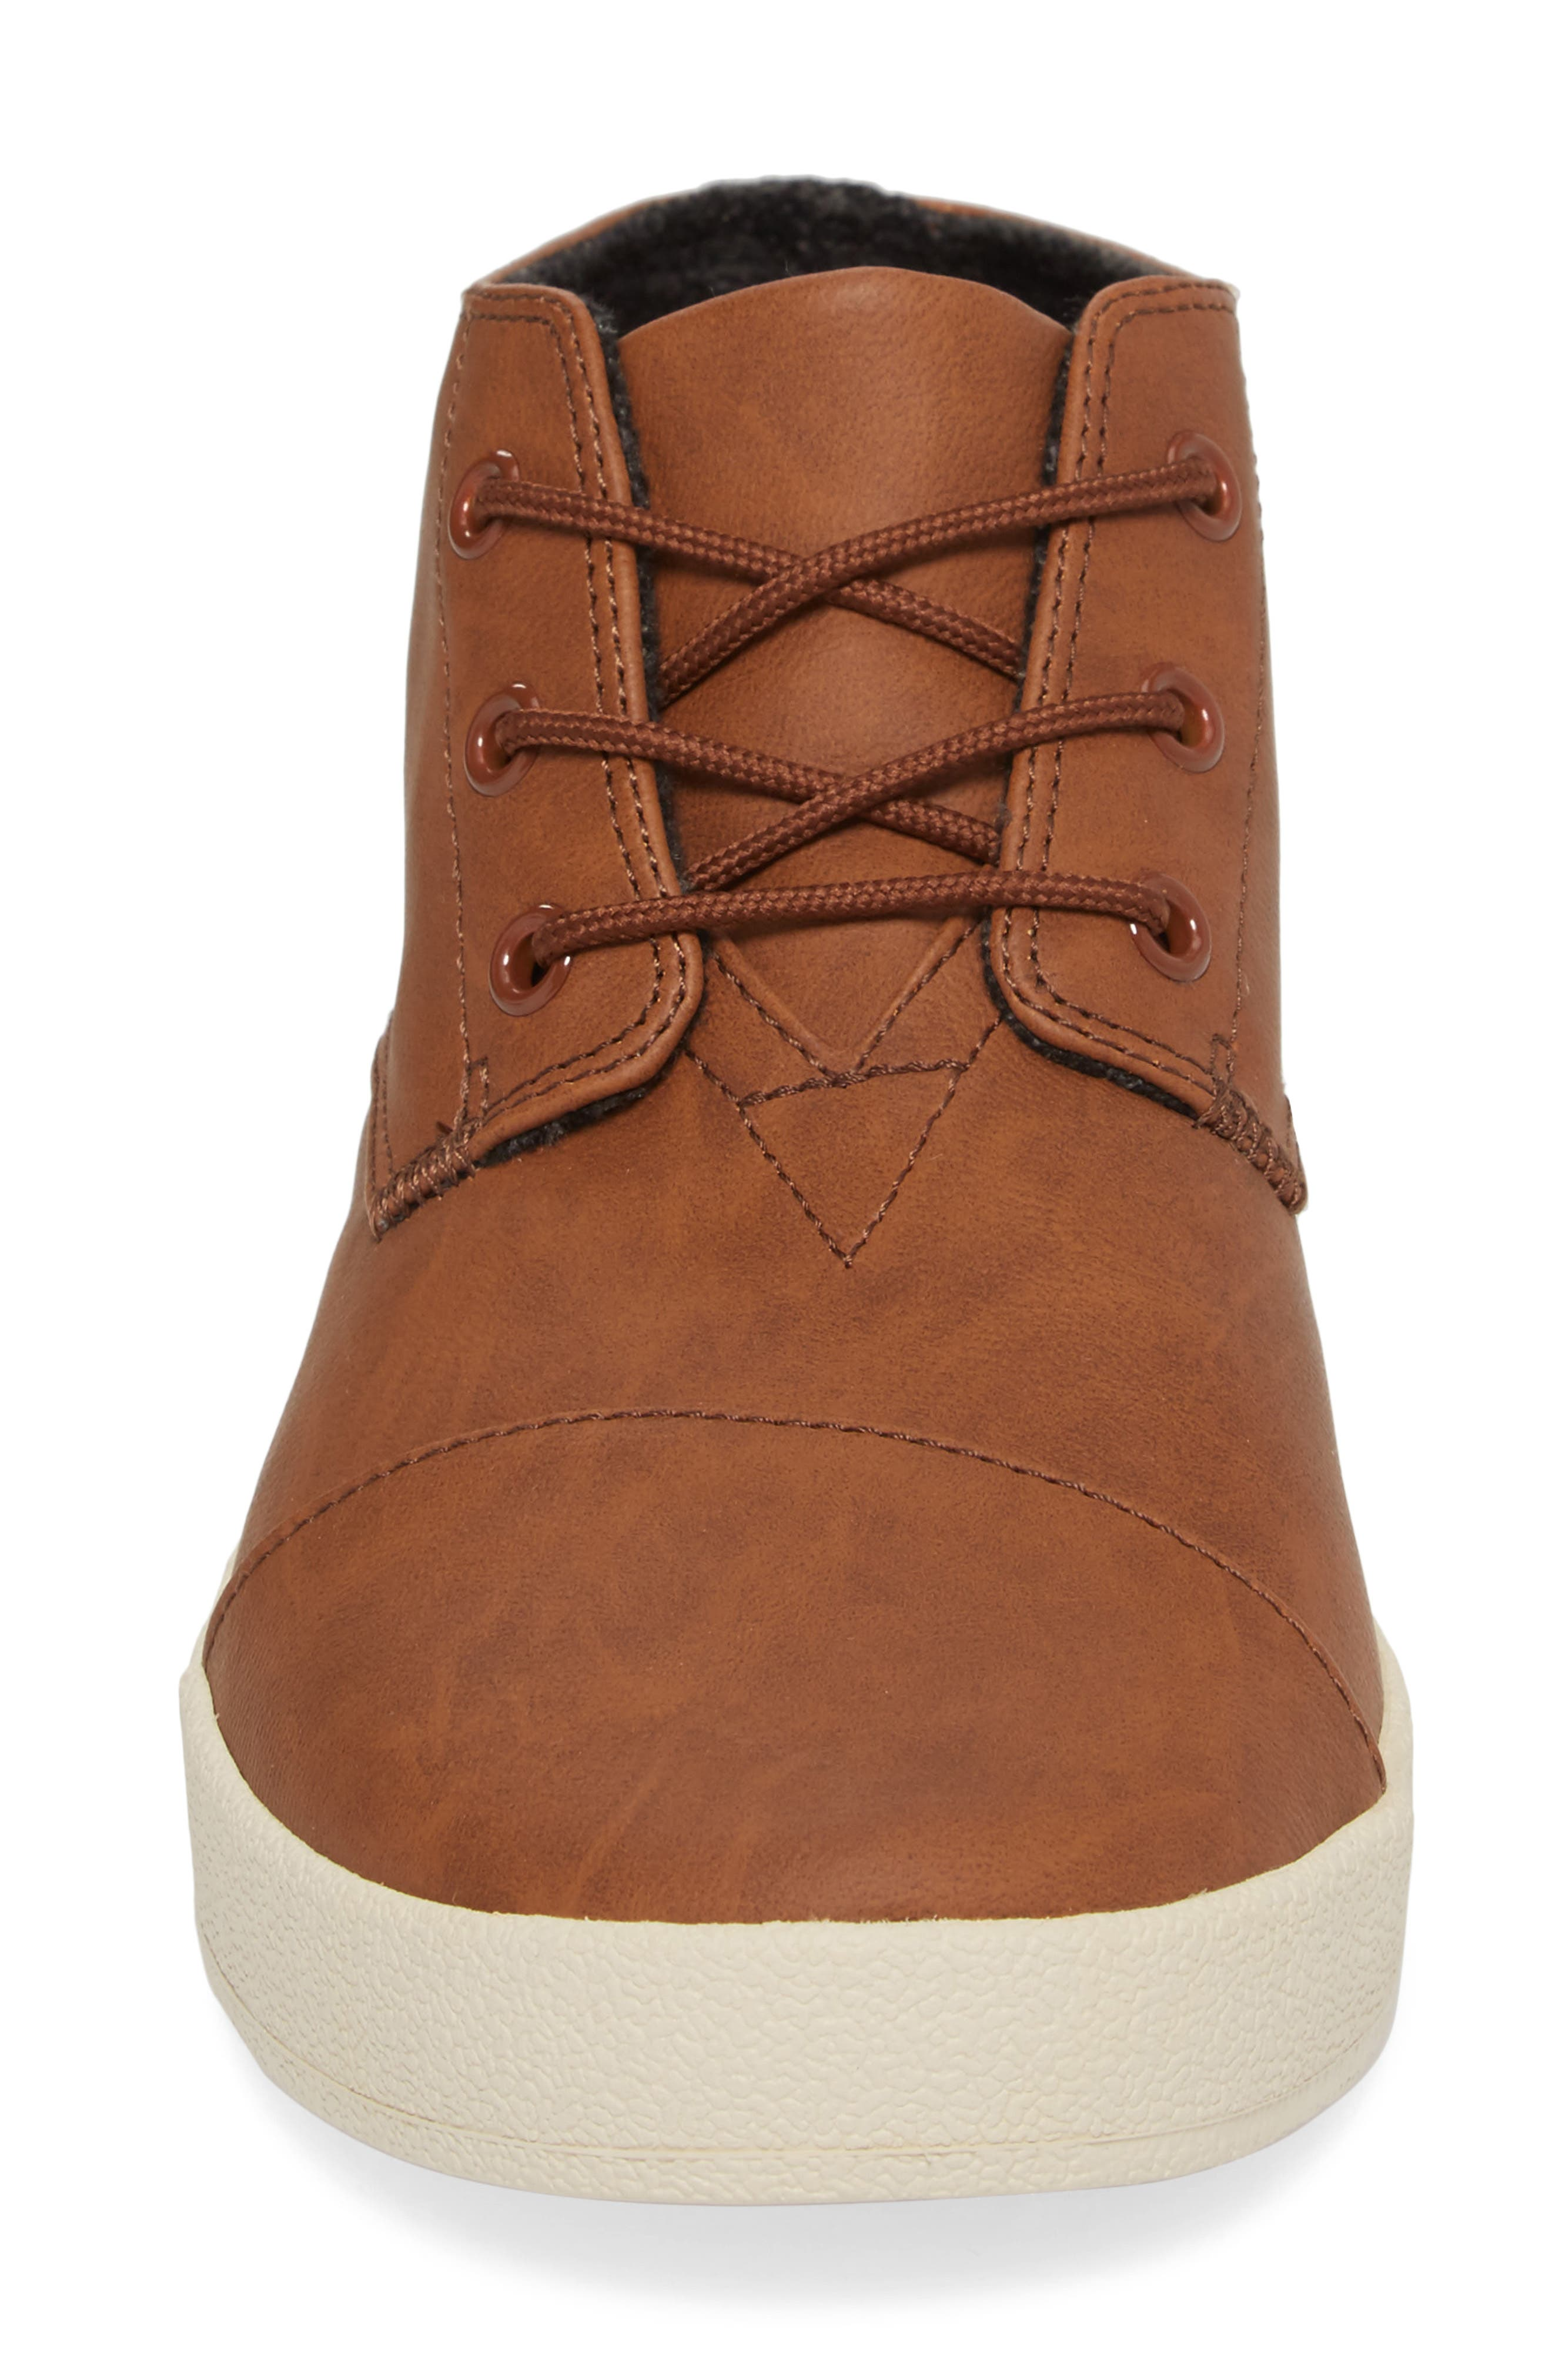 Paseo Mid Sneaker,                             Alternate thumbnail 4, color,                             Dark Earth Brown